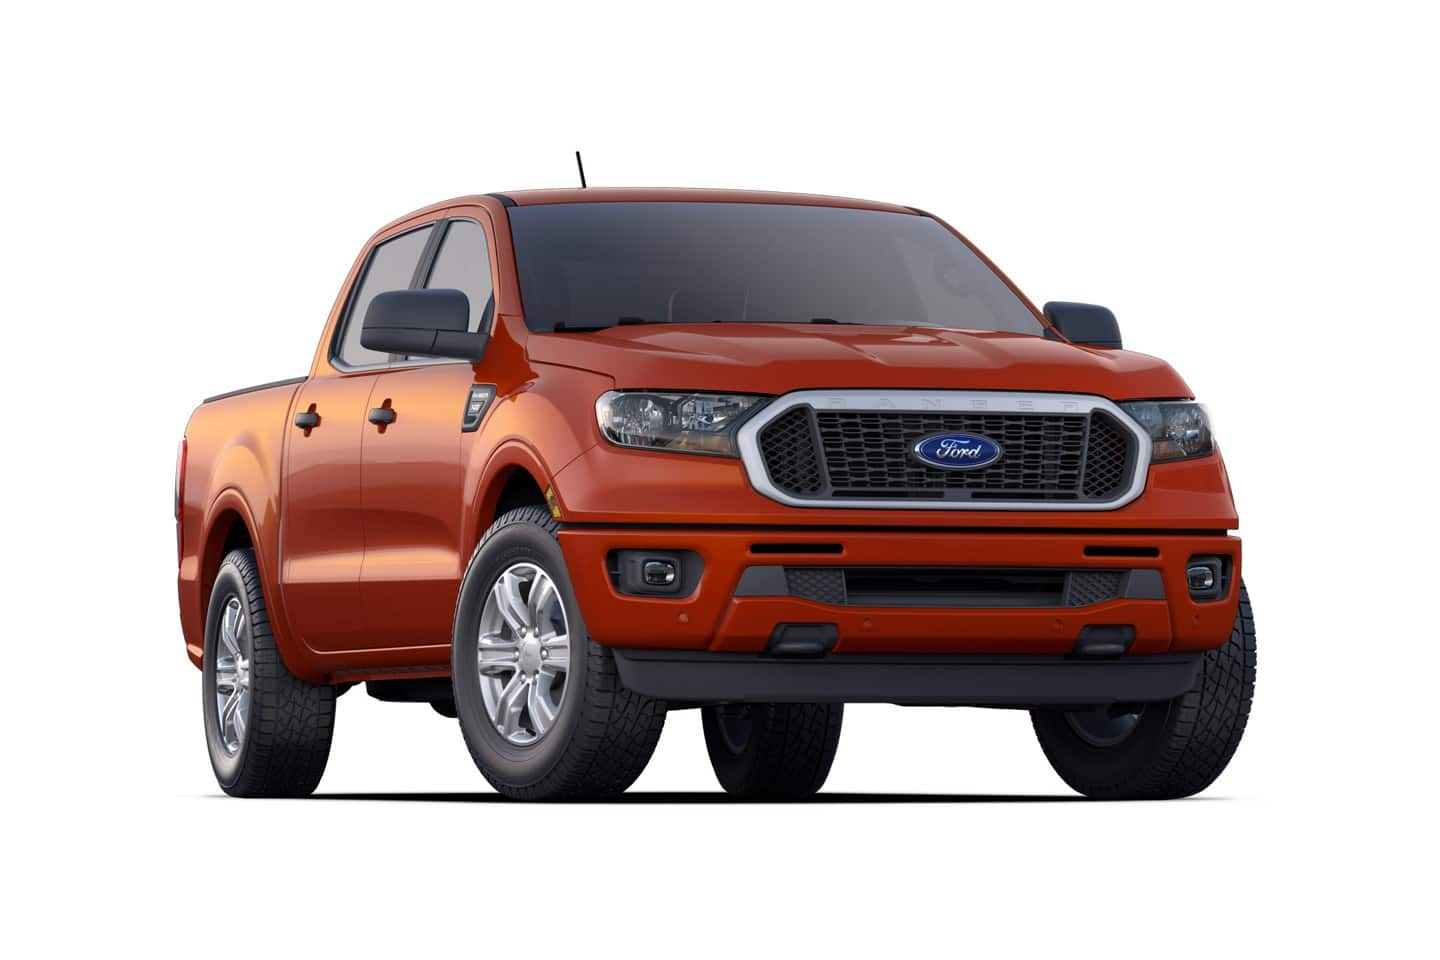 65 A 2019 Ford Ranger Engine Options Wallpaper